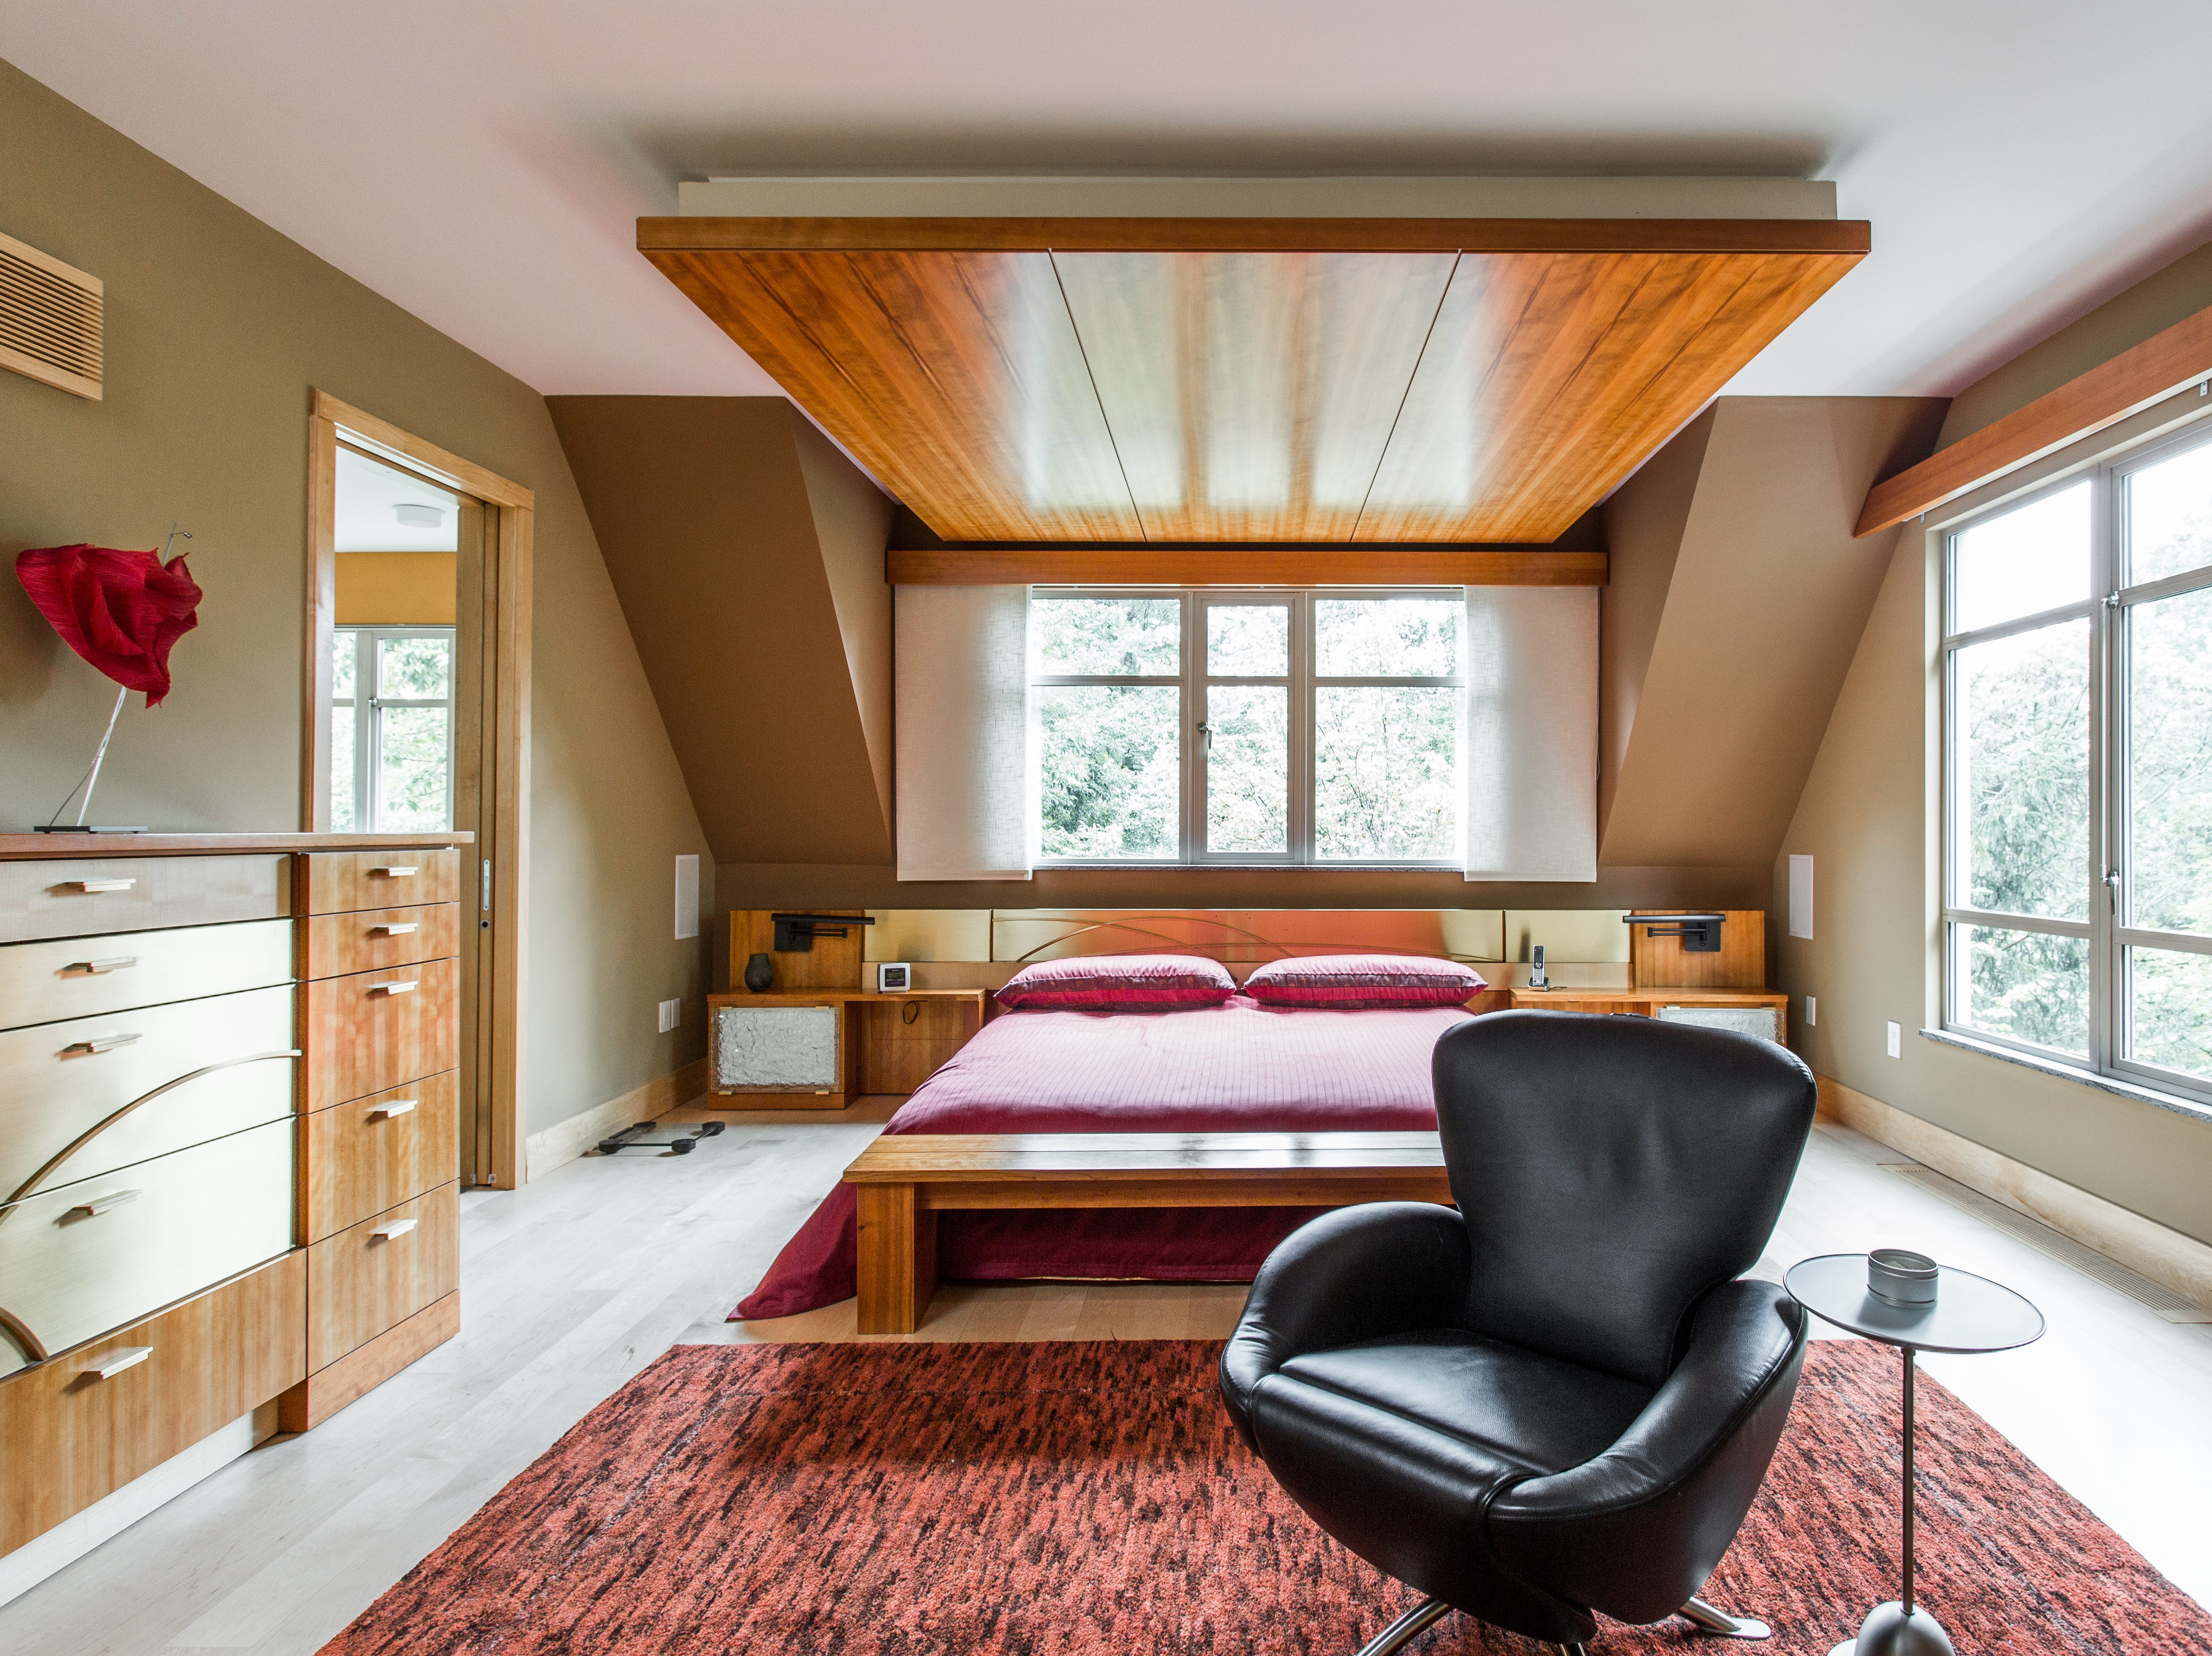 The master bedroom features views of the wooded lot.